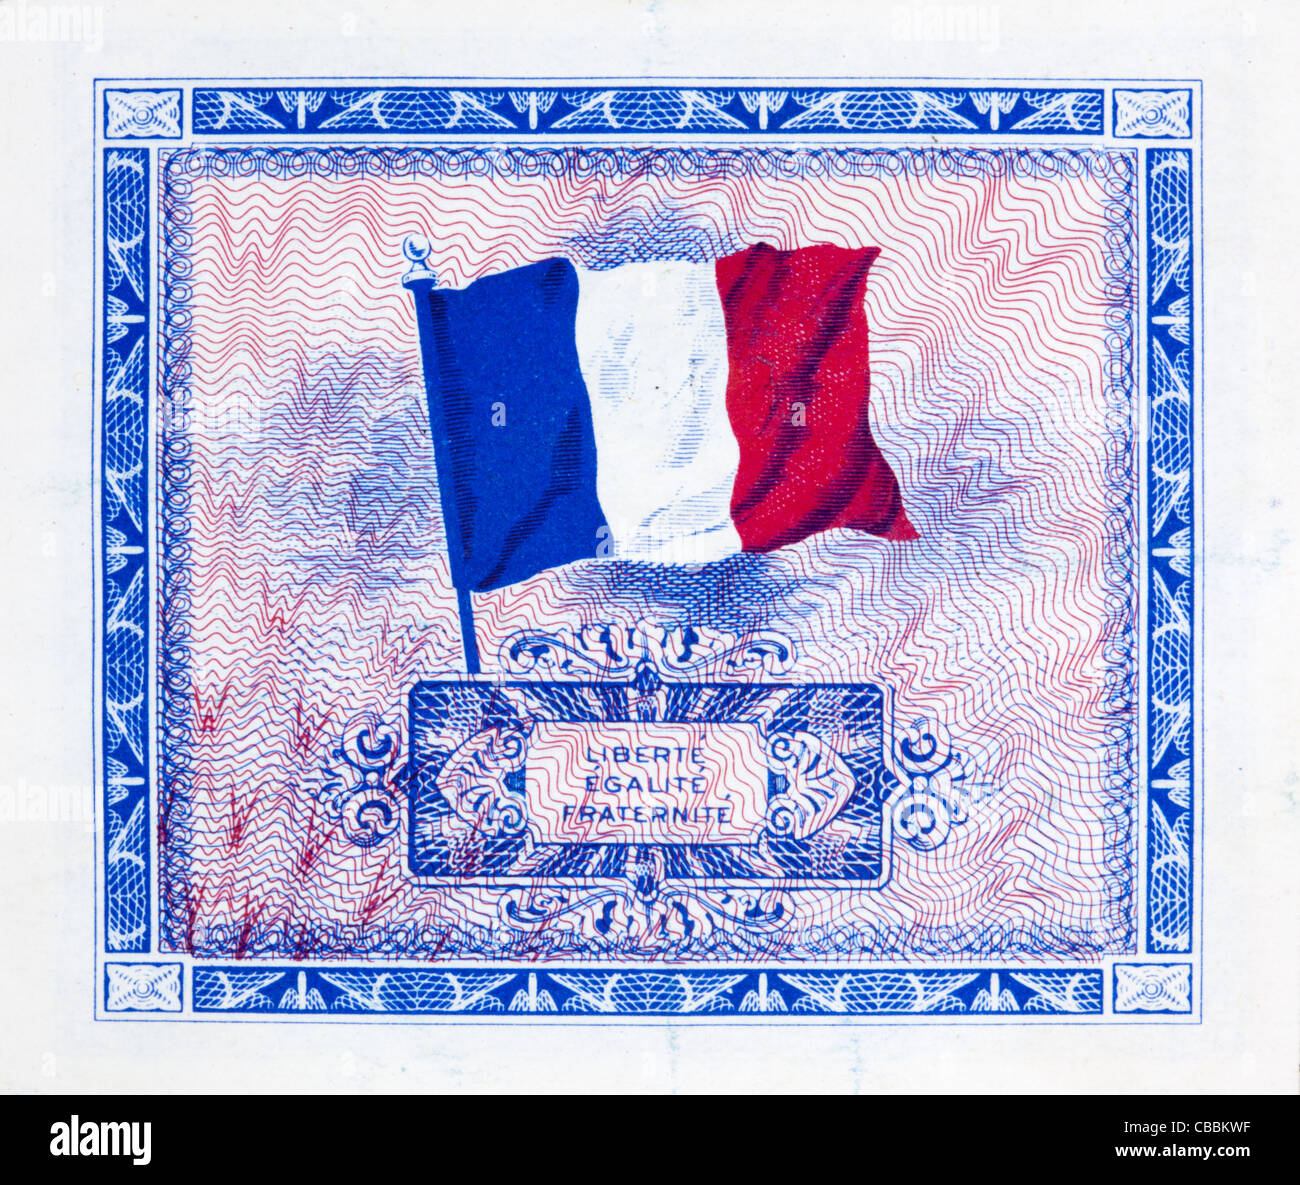 1944 Supplemental French Franc Currency used by the Allied Forces in Europe during World War II Stock Photo